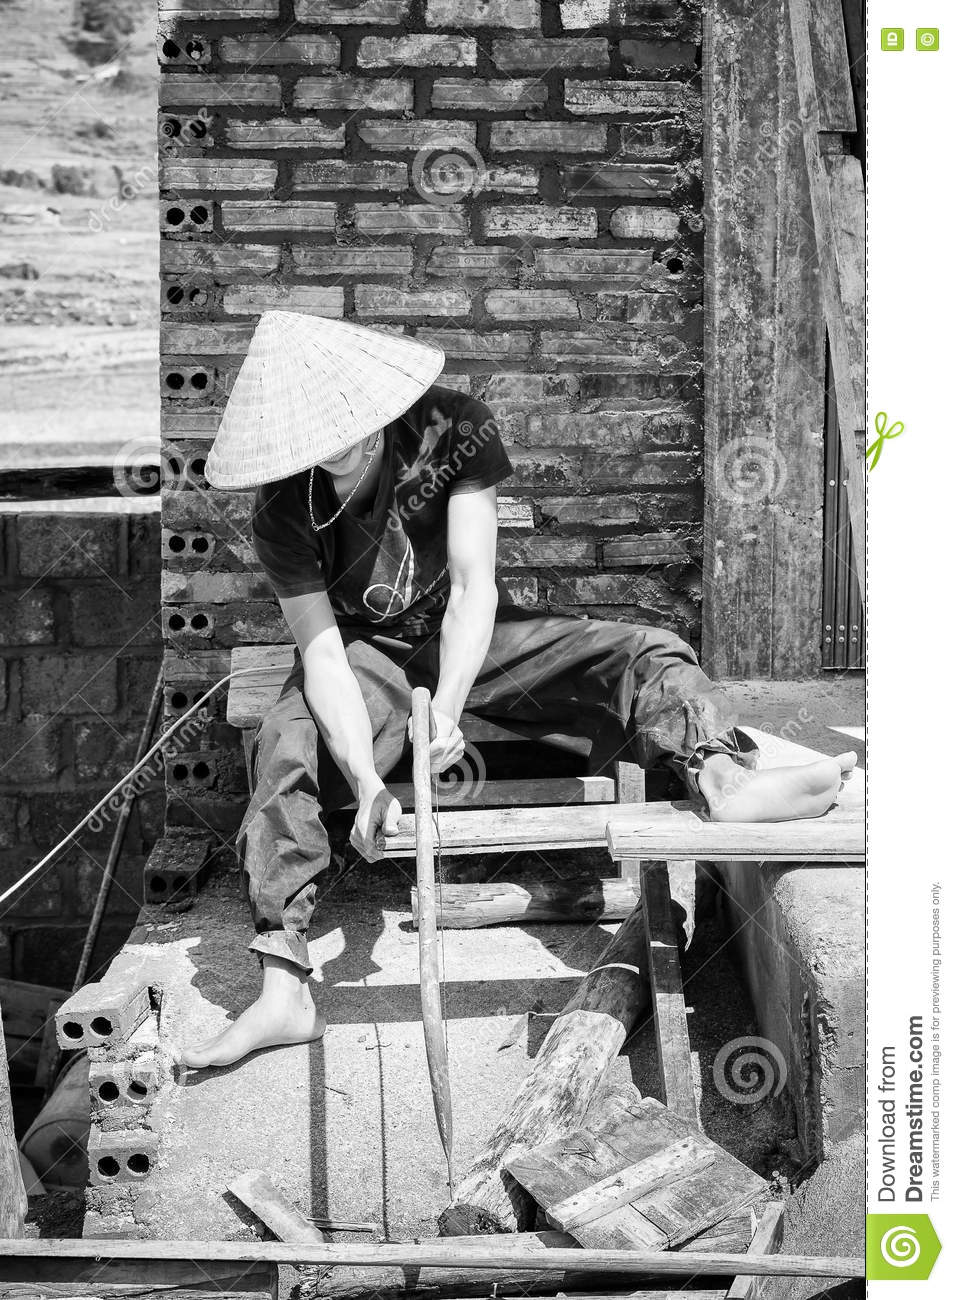 Real People In Vietnam, Black And White Editorial Stock